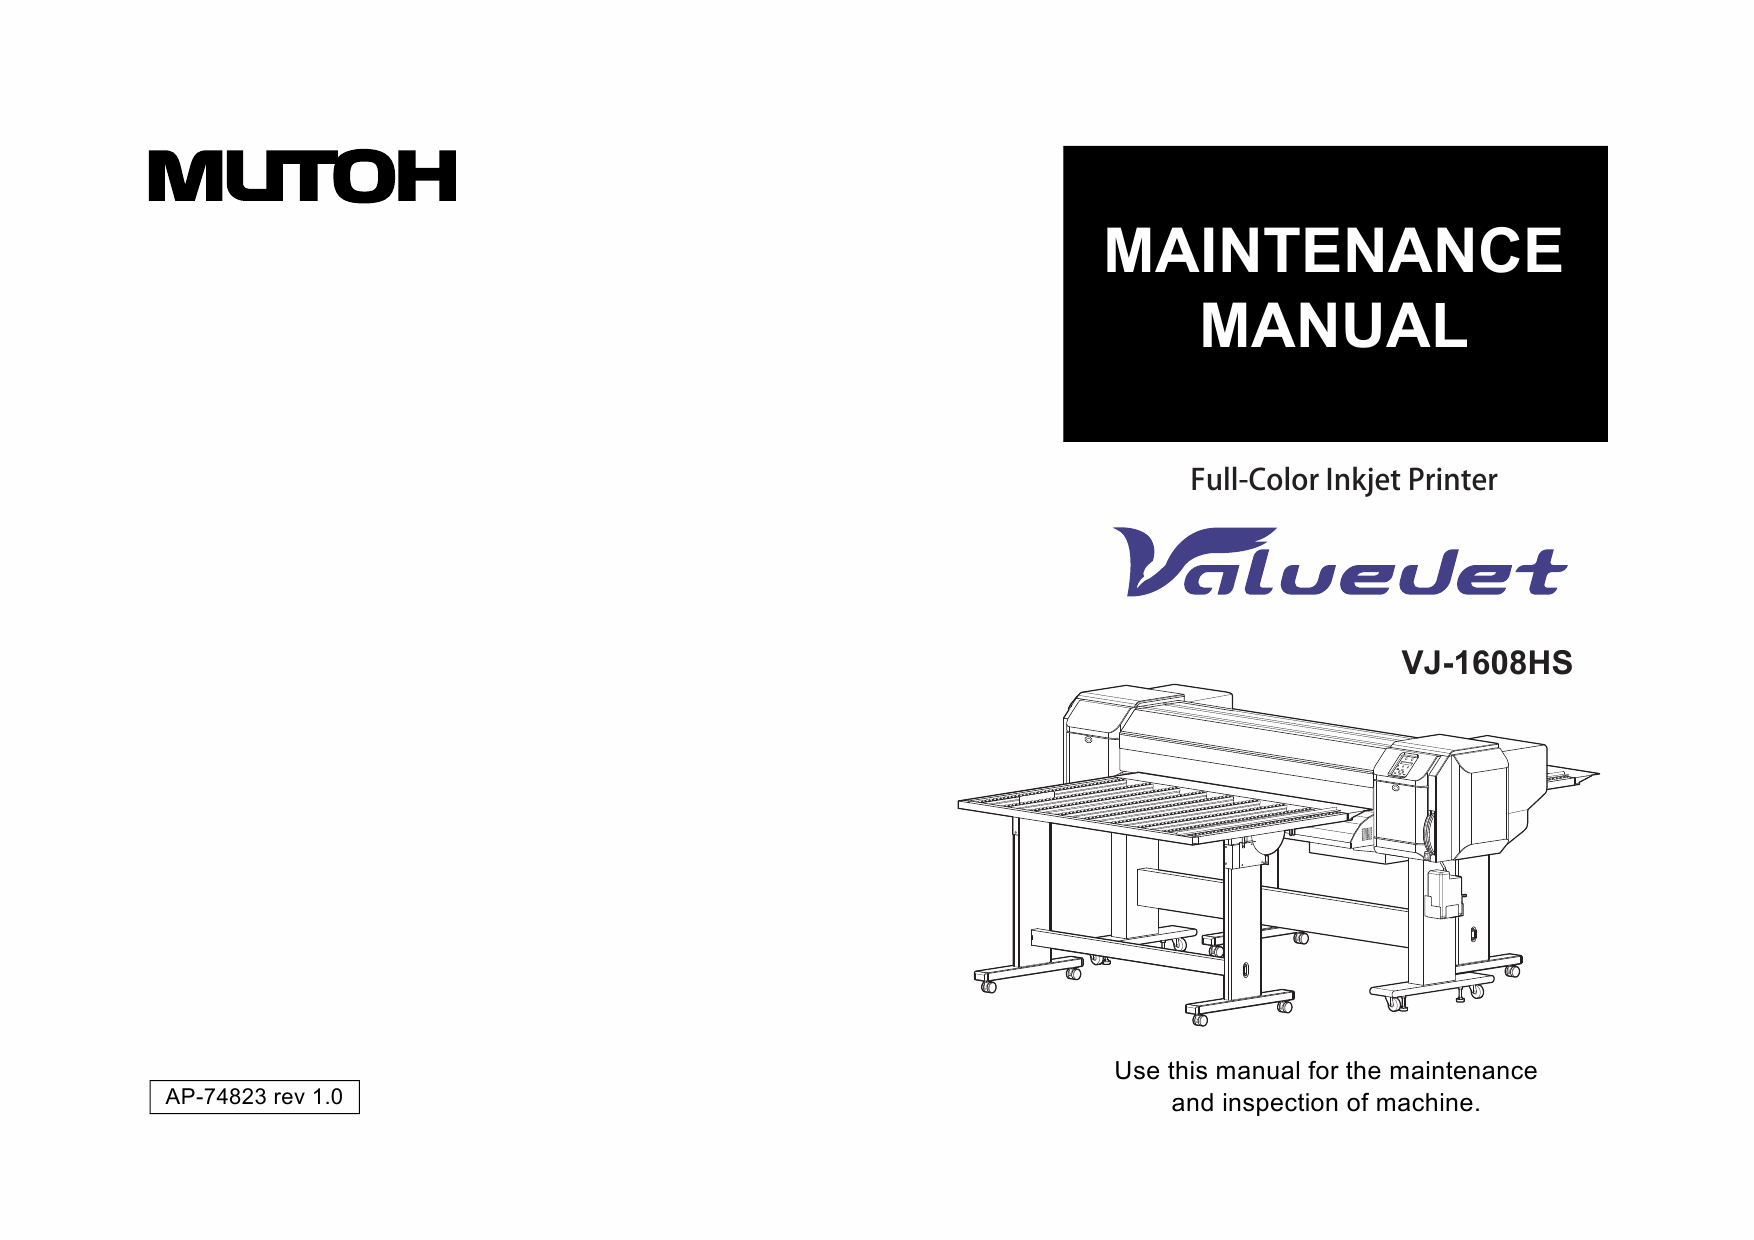 MUTOH ValueJet VJ 1608HS MAINTENANCE Service Manual-1